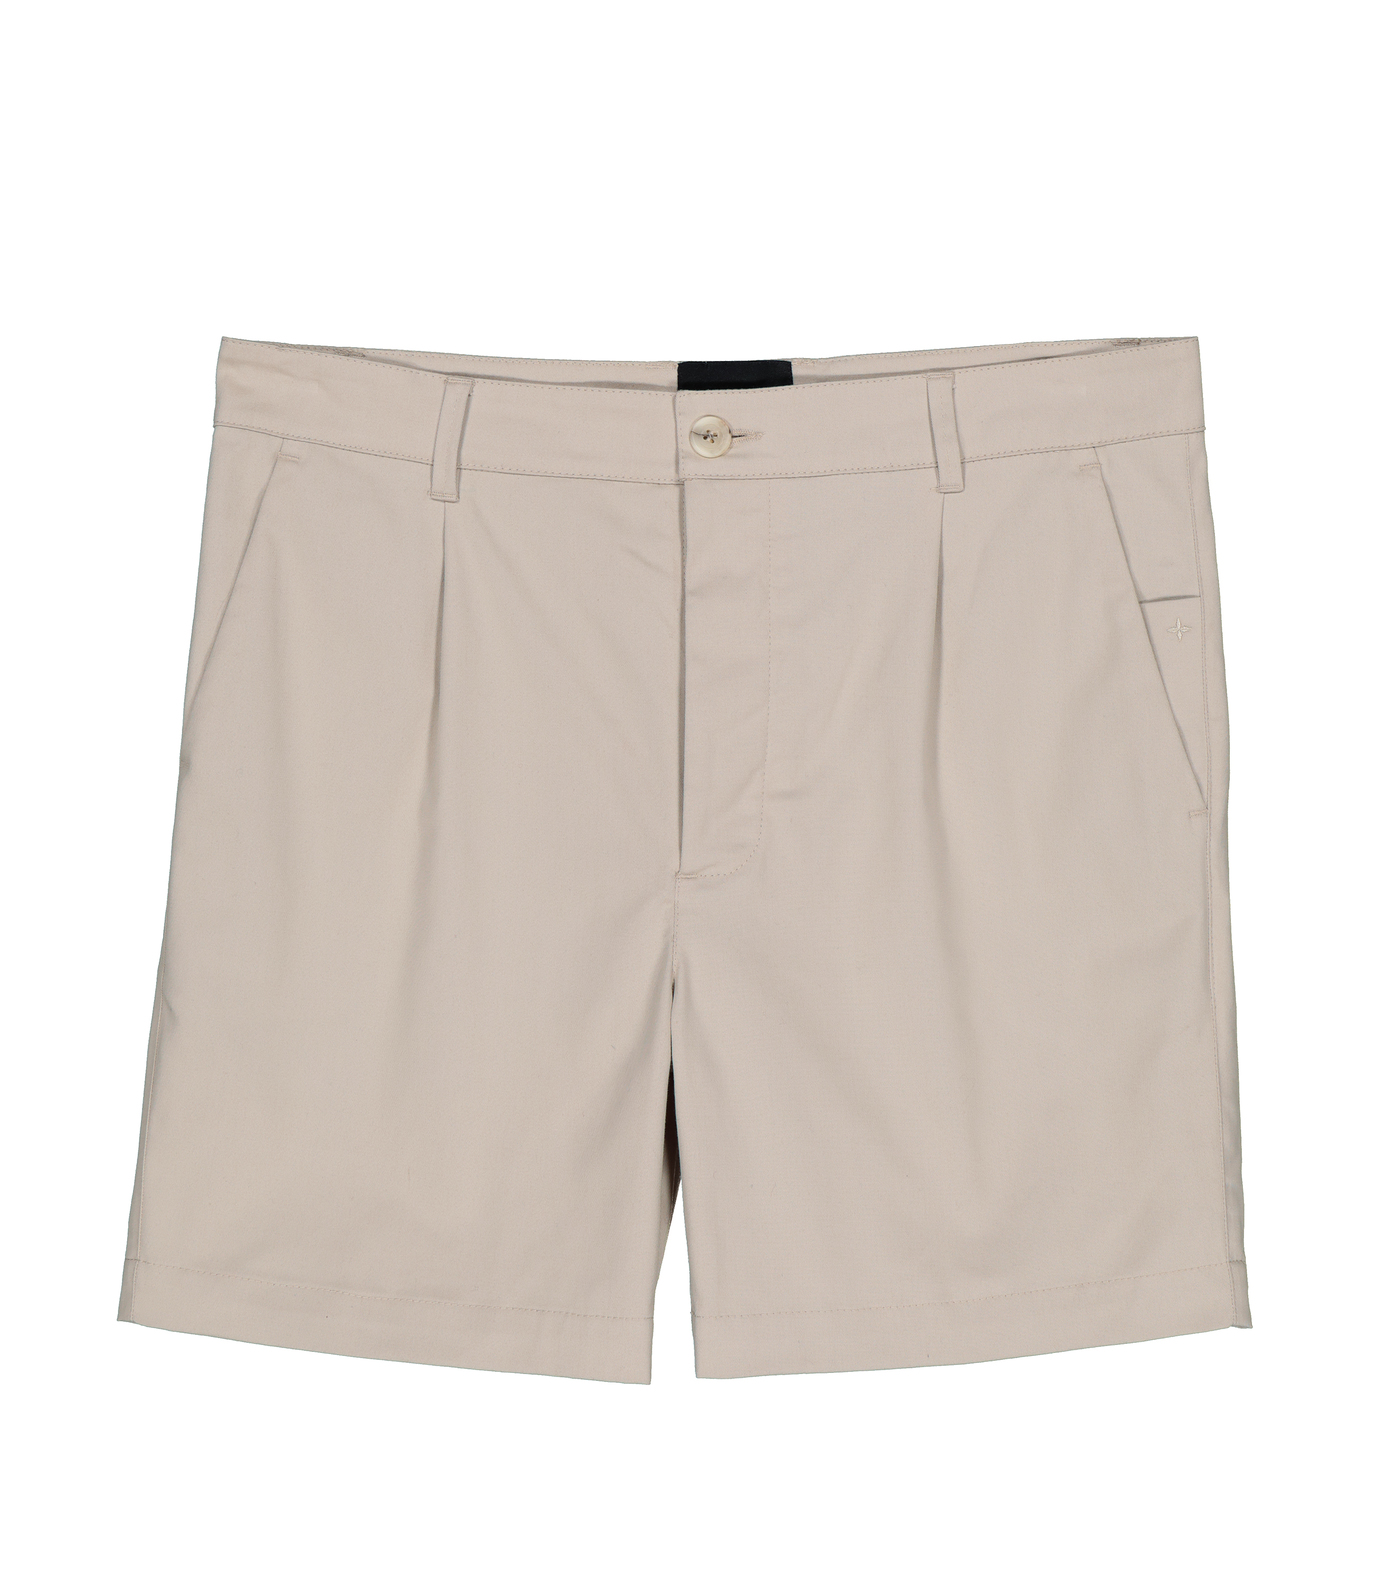 SHORTS SP5 - Sable